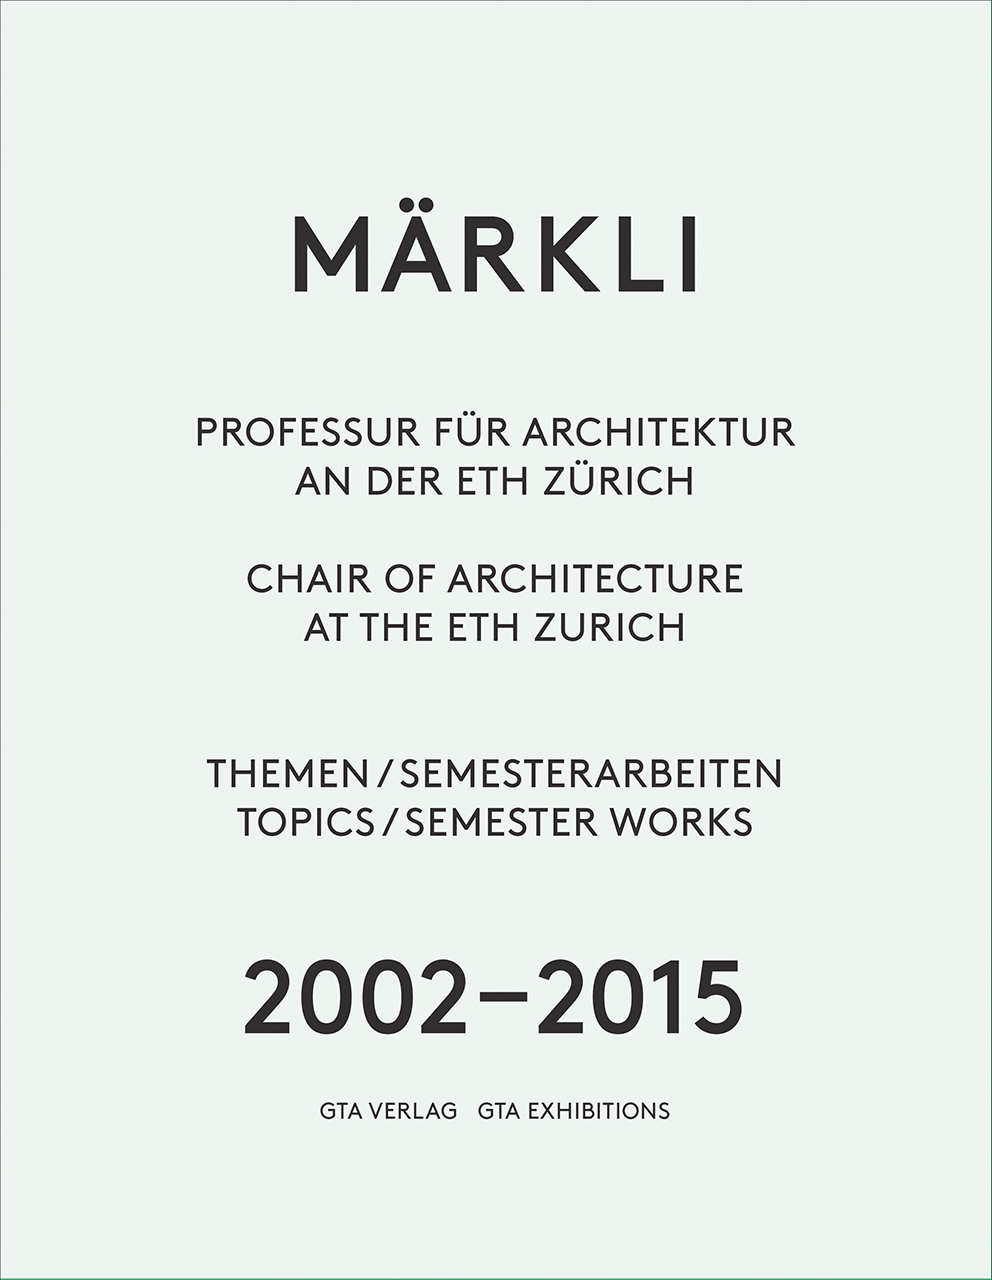 Märkli: Chair of Architecture at the ETH Zurich